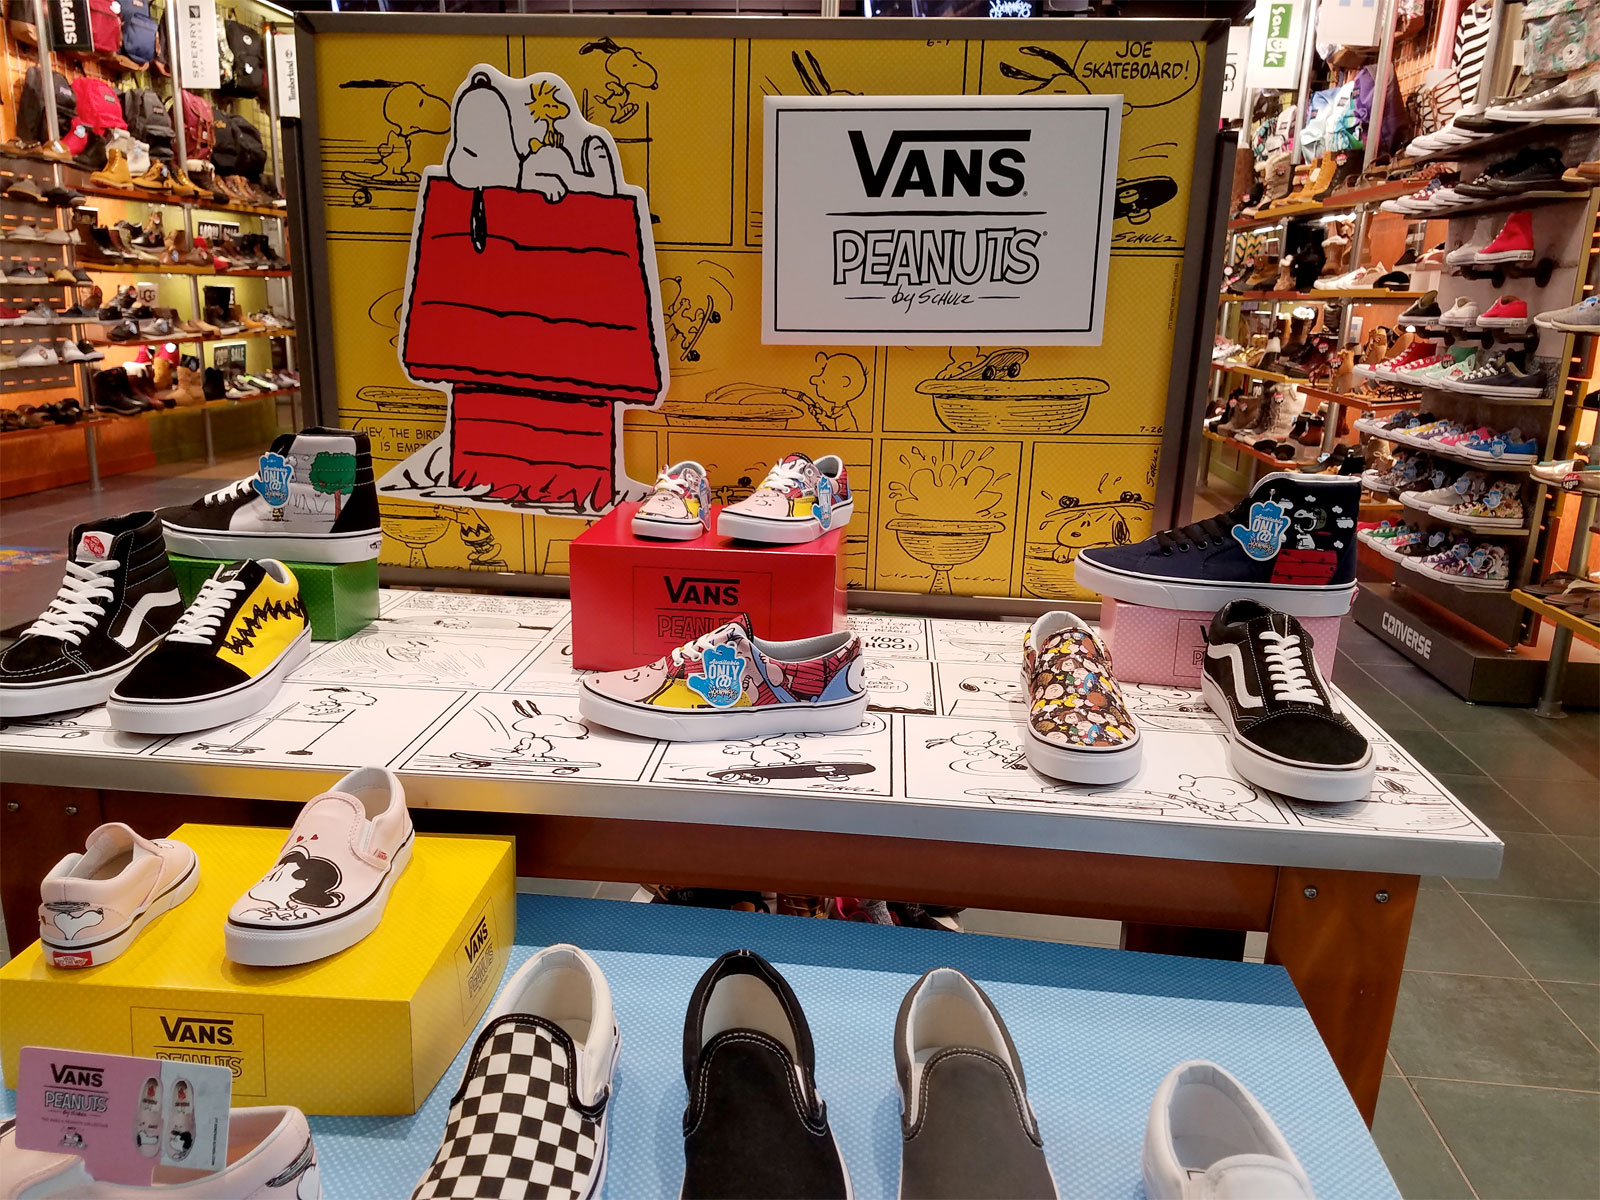 Vans shoes with various Peanuts themes